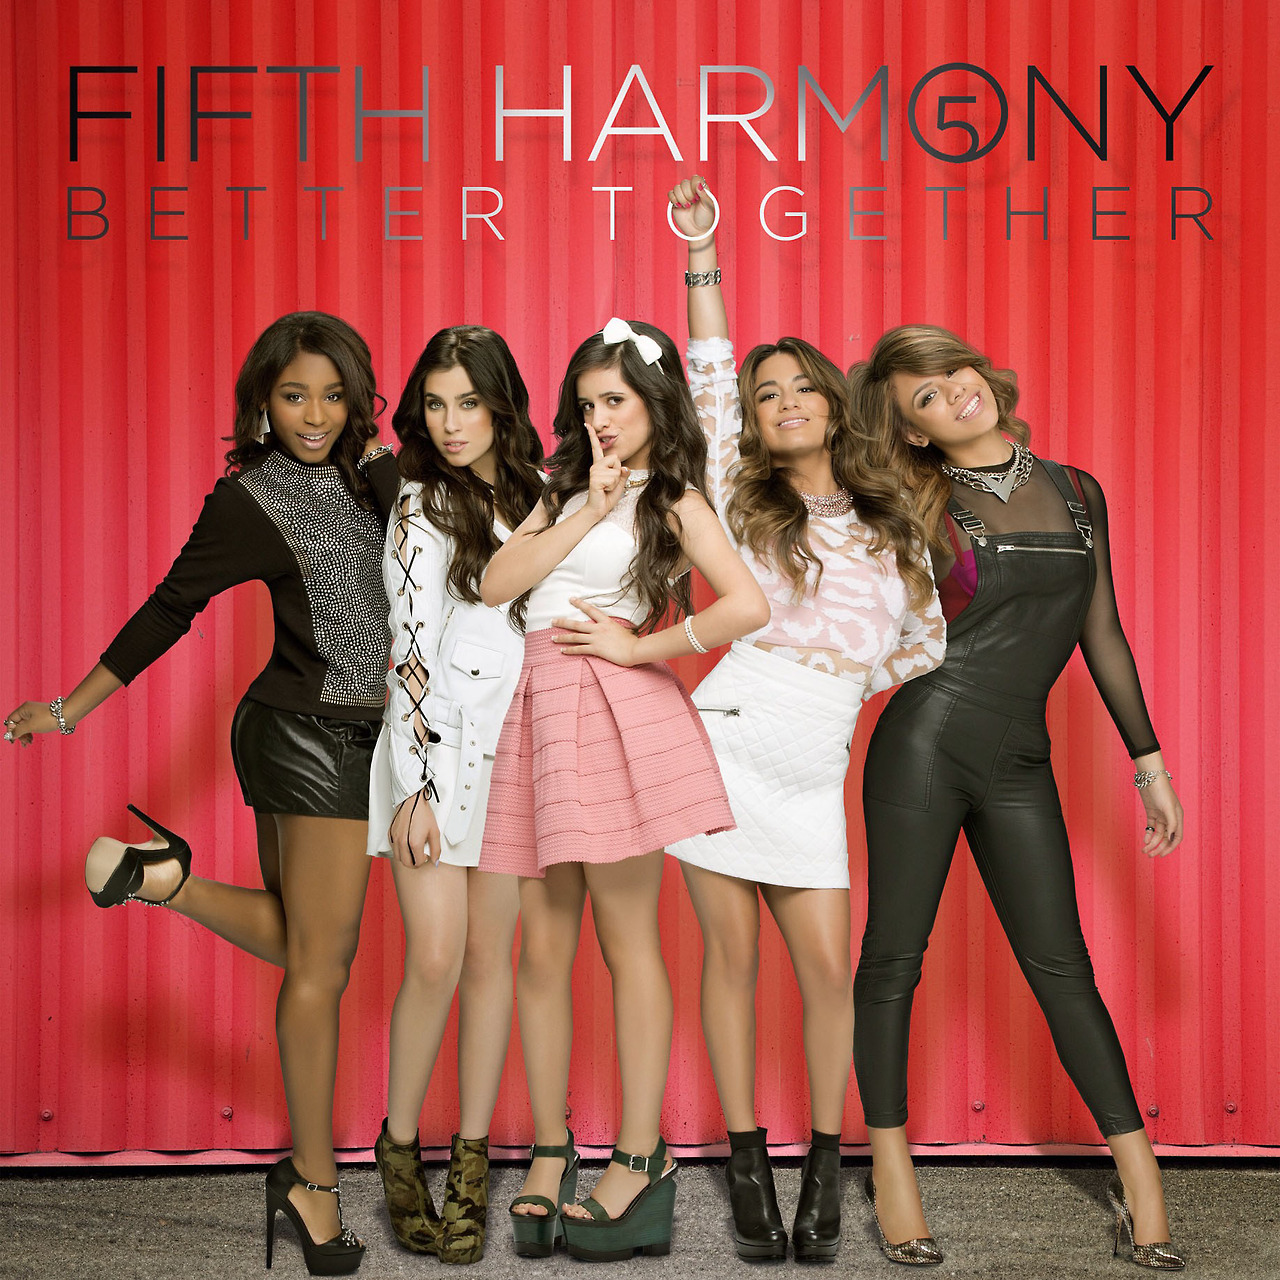 Better Together (EP) – Wikipédia, a enciclopédia livre |Fifth Harmony Better Together